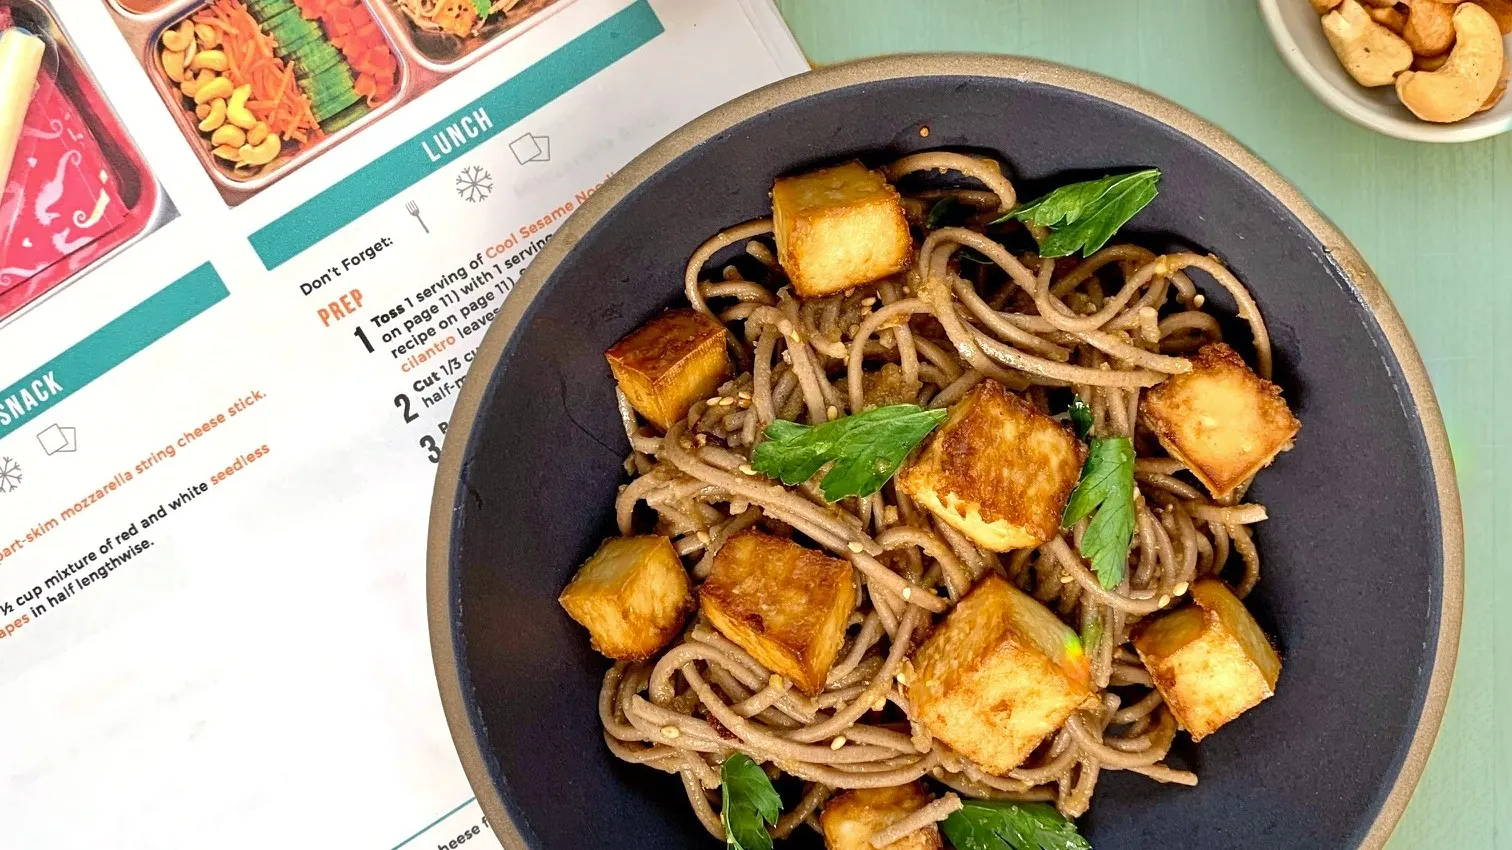 Cool sesame noodles in a gray bowl with baked tofu cubes and mint